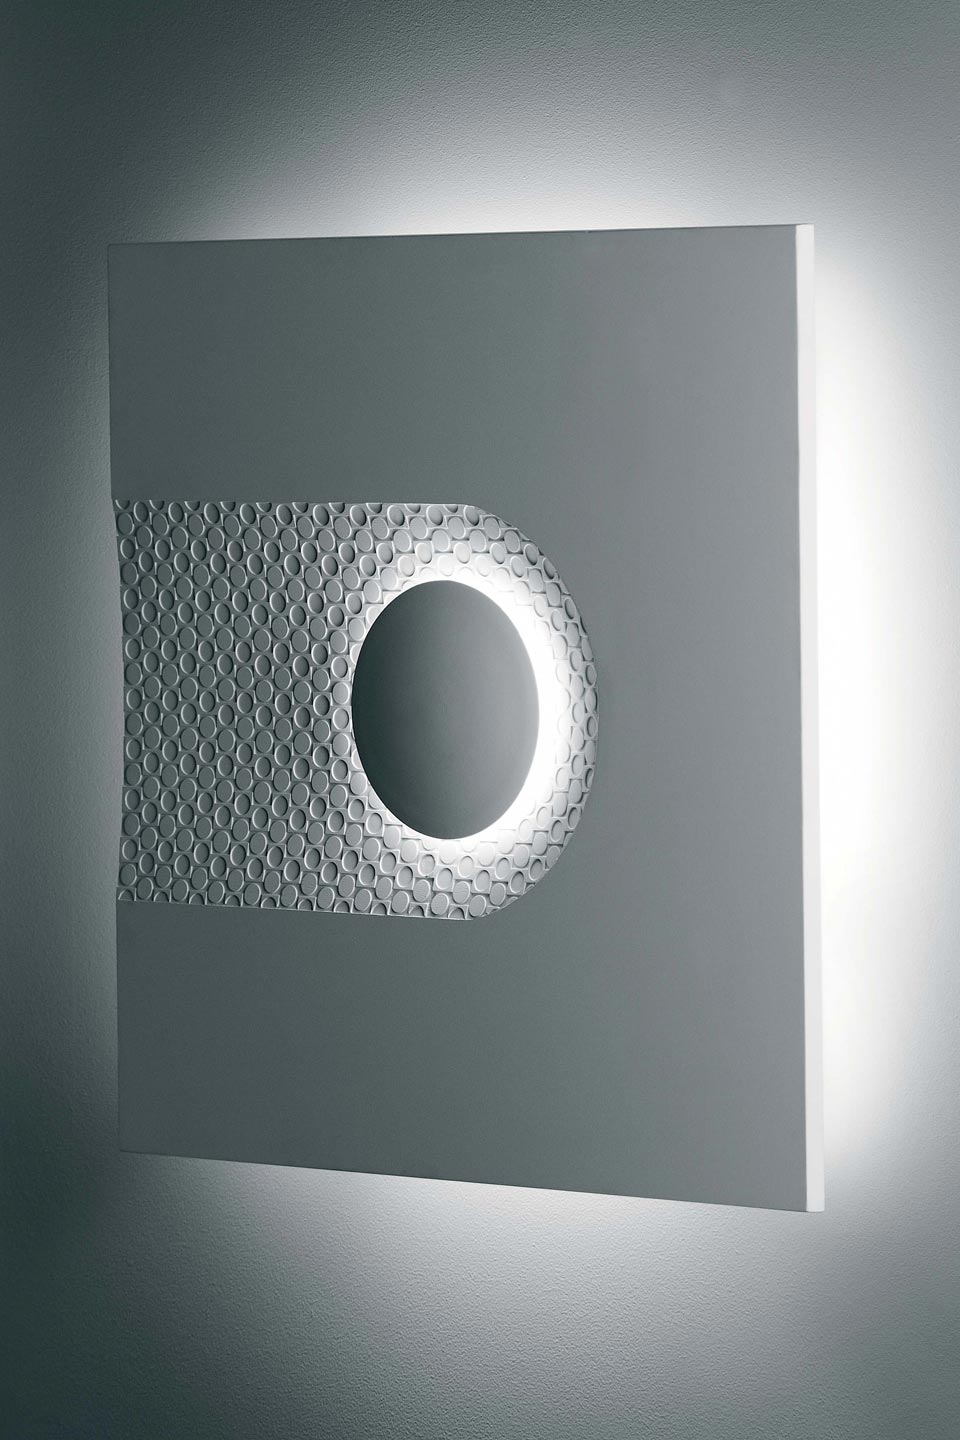 Wallpaper 3027 wall lamp in natural white plaster. Sedap.